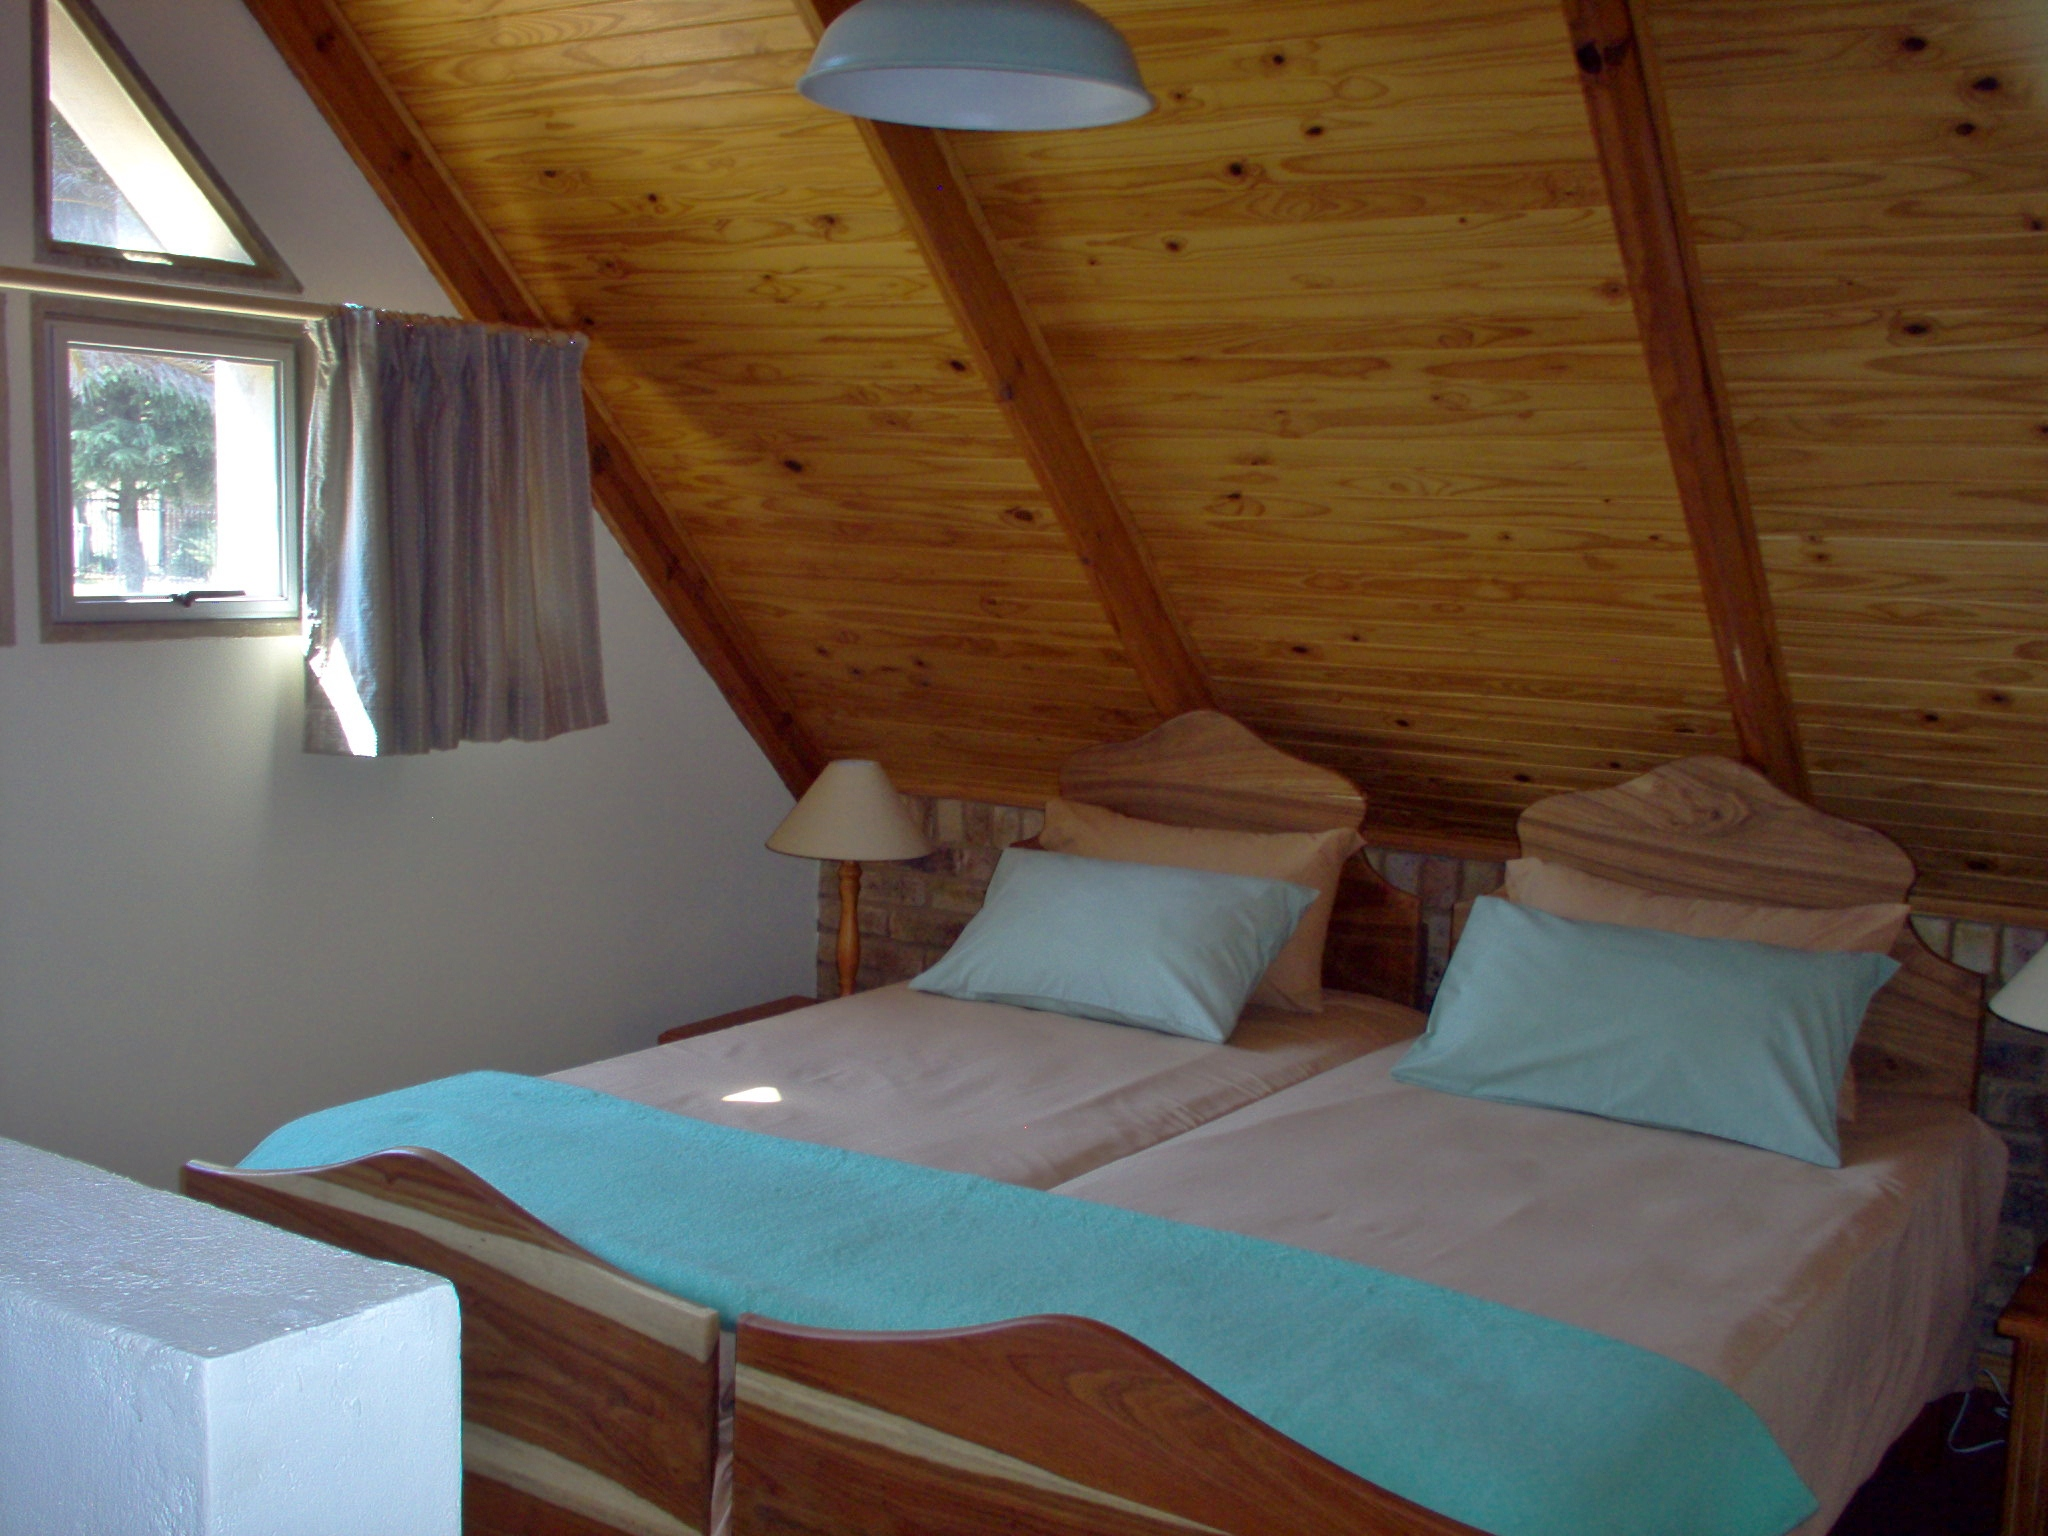 K4 B&B Self-catering